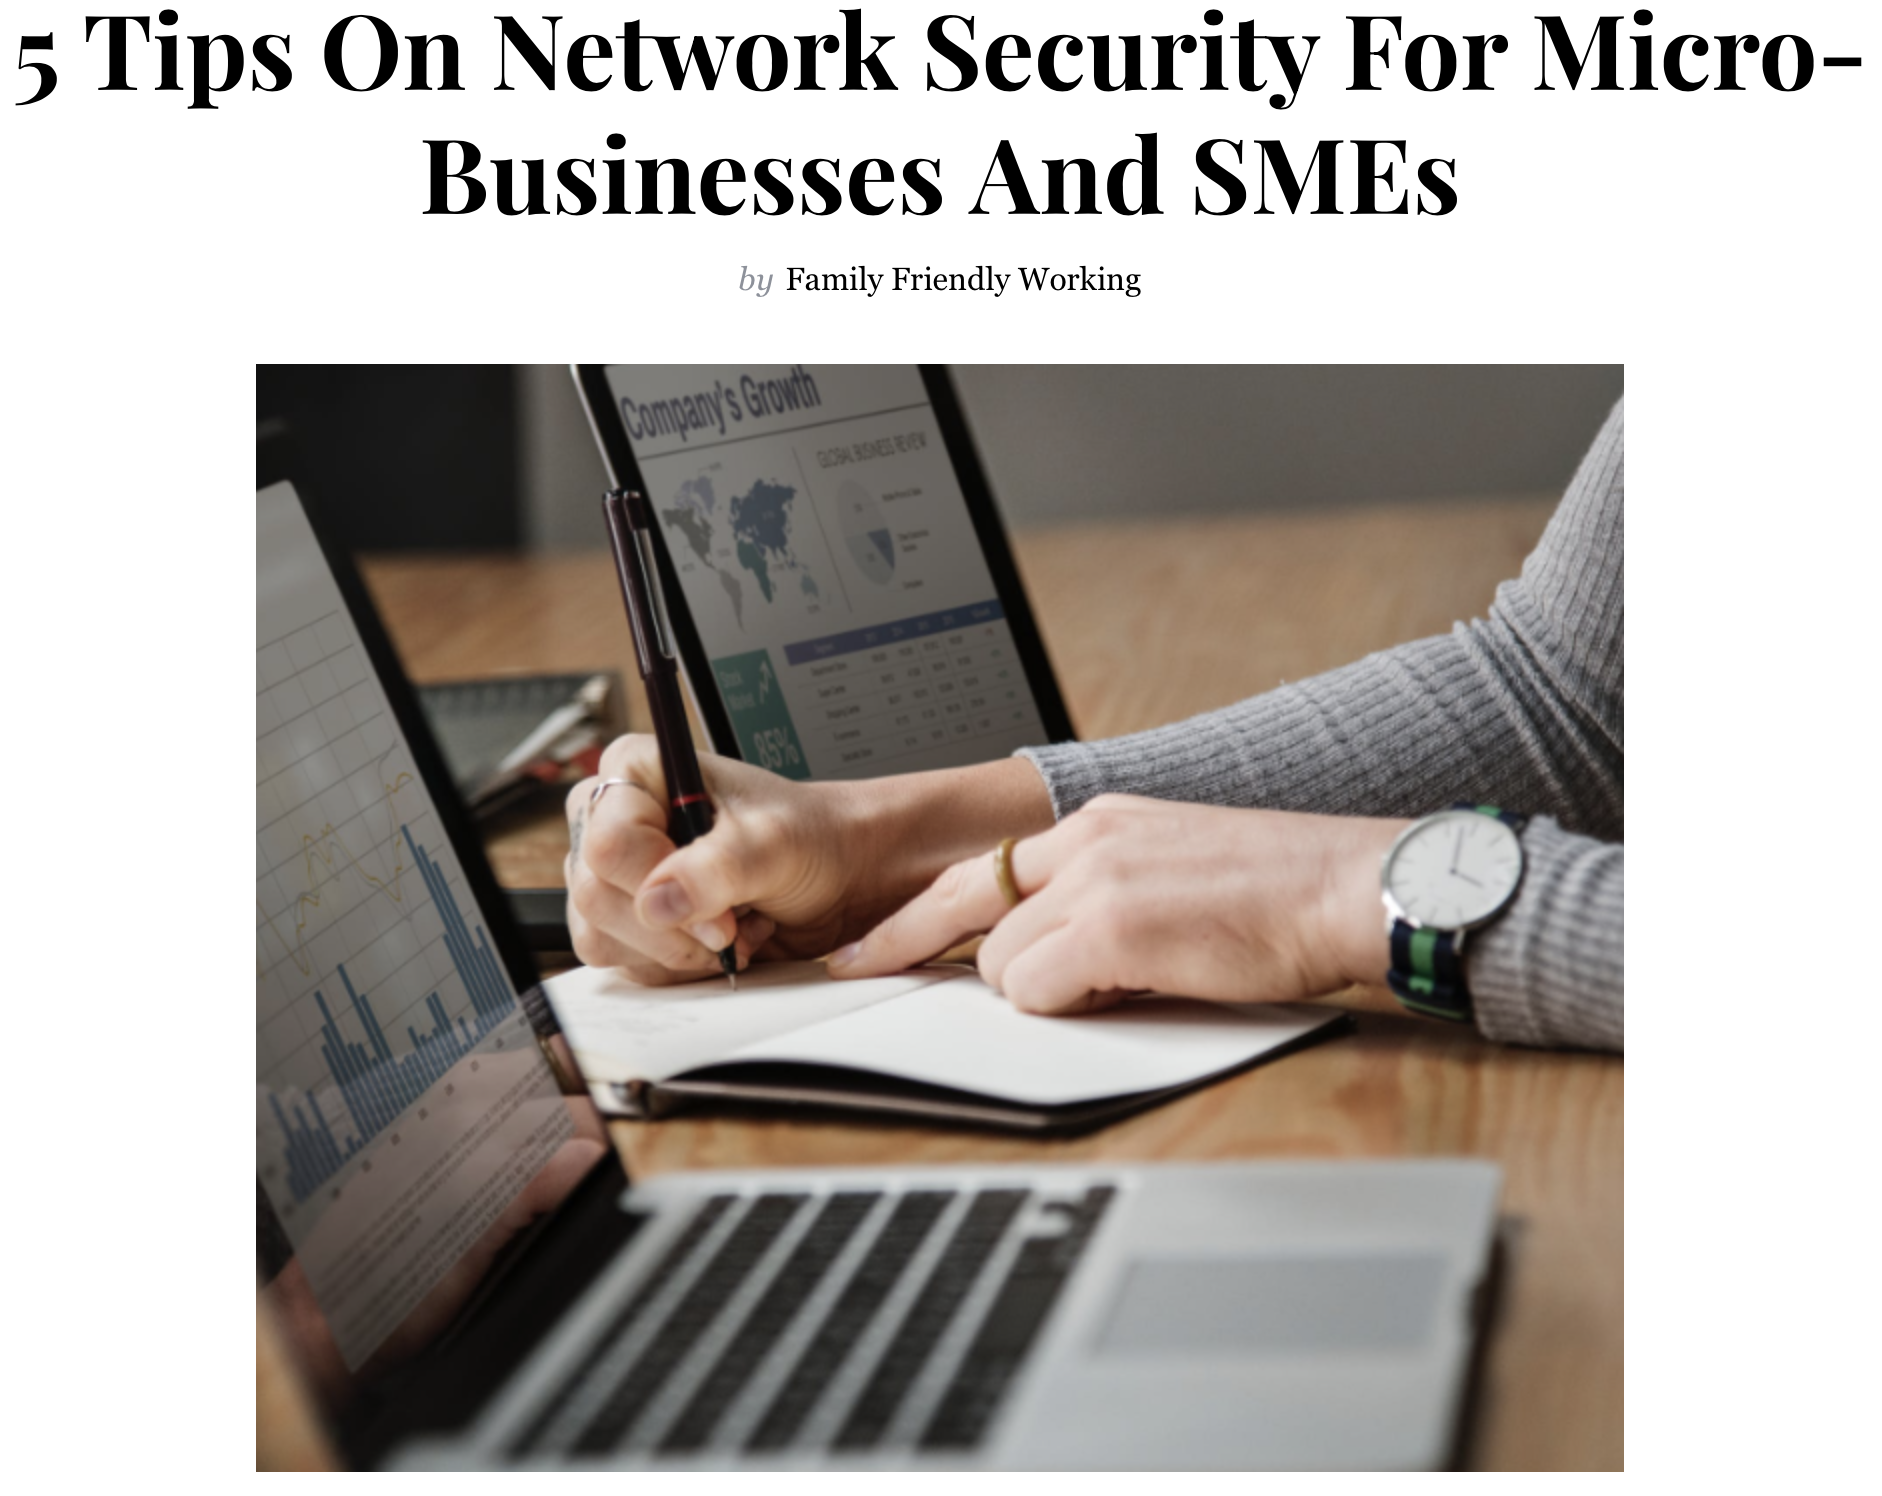 Network Security - friendly matters article